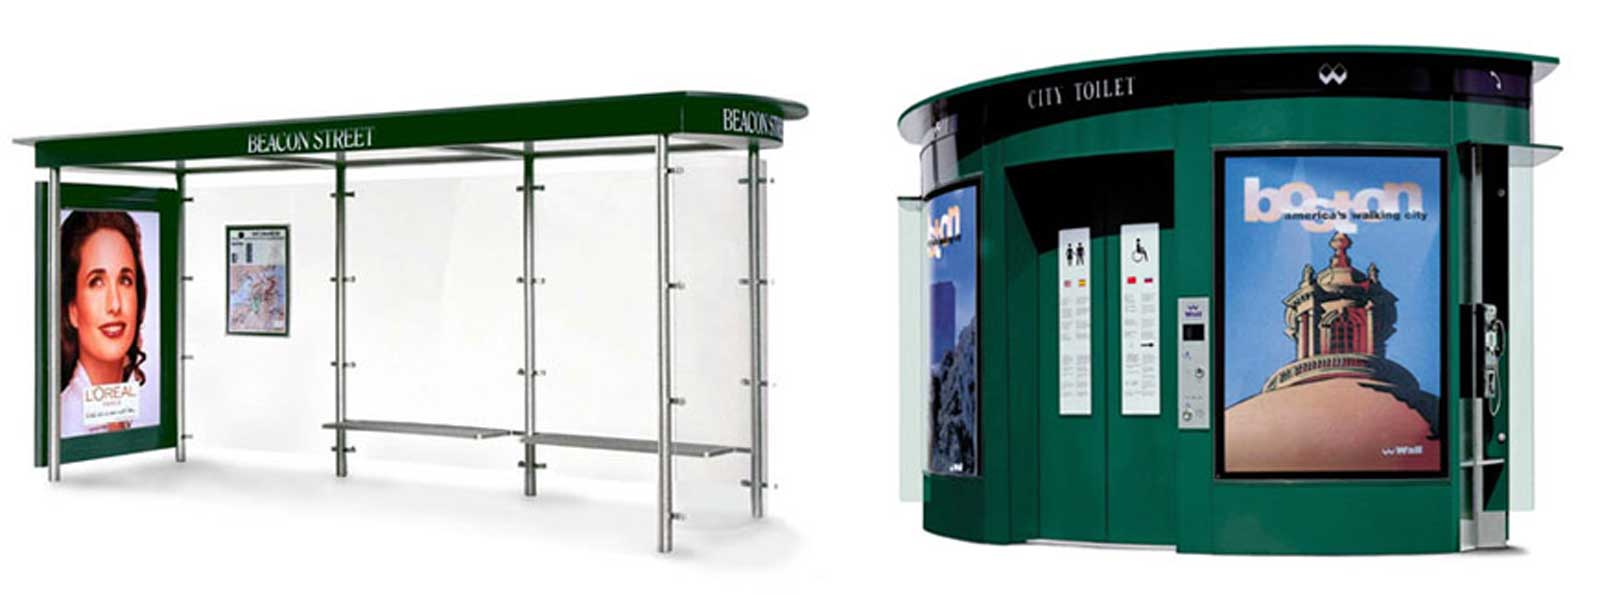 Image for a bus shelter and a public toilet